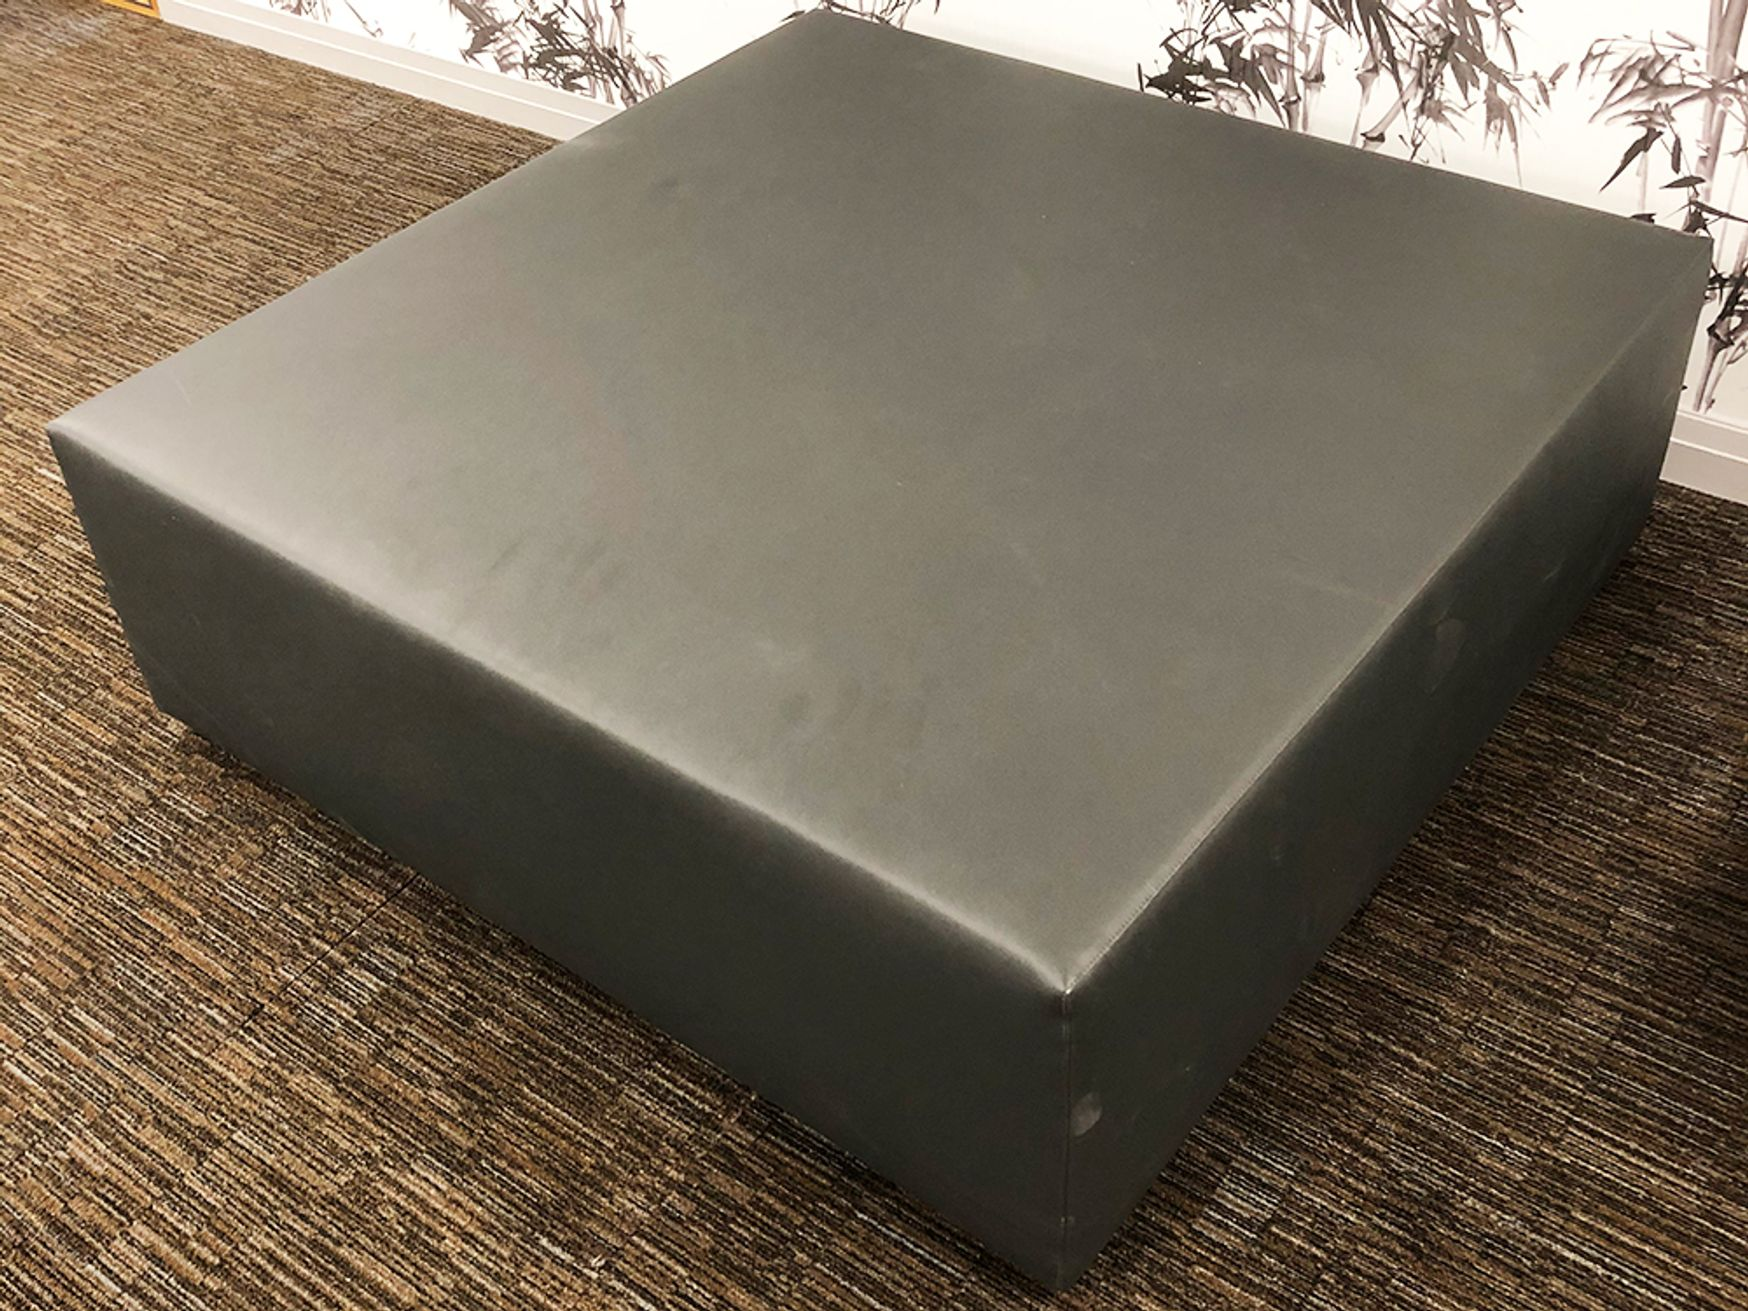 Used Marelli Soft Seating Square in Black